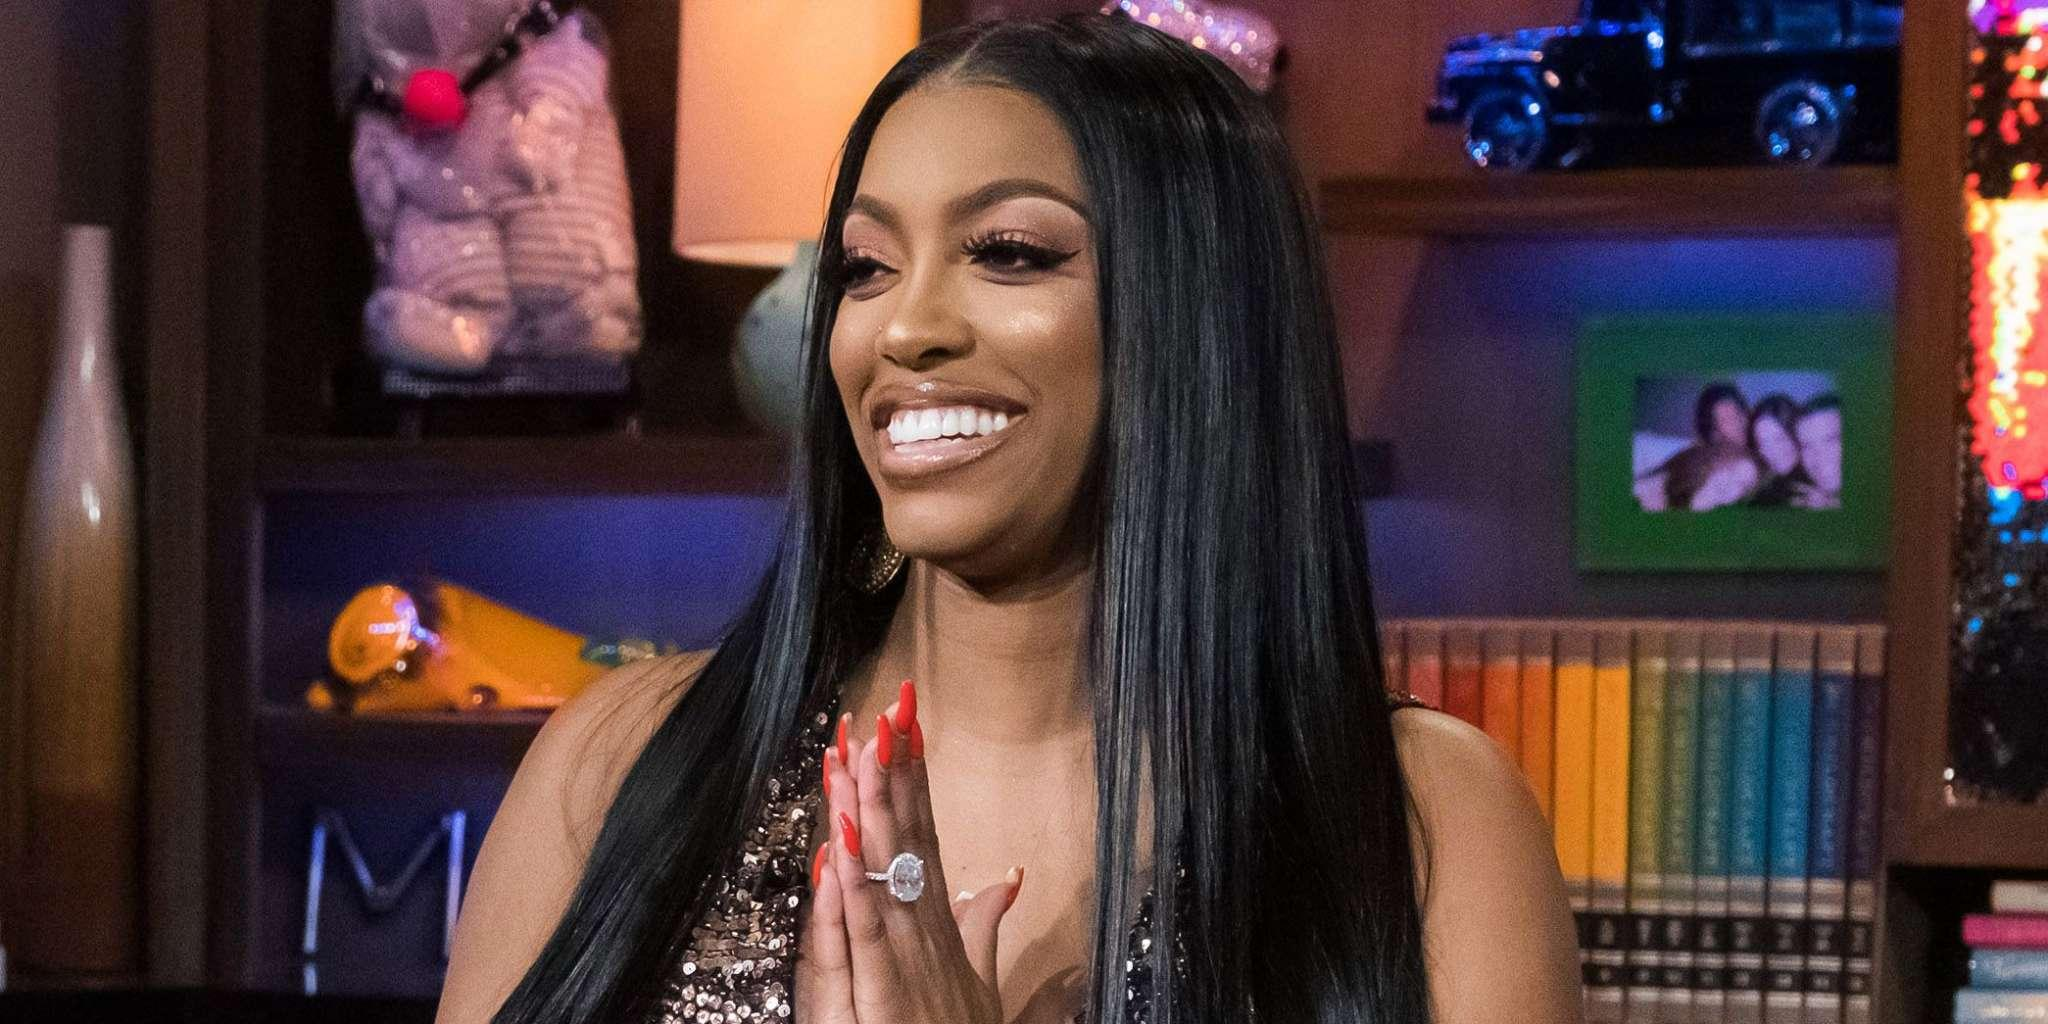 Porsha Williams Offers Her Gratitude For Having The Honor To Moderate The Virtual Town Hall